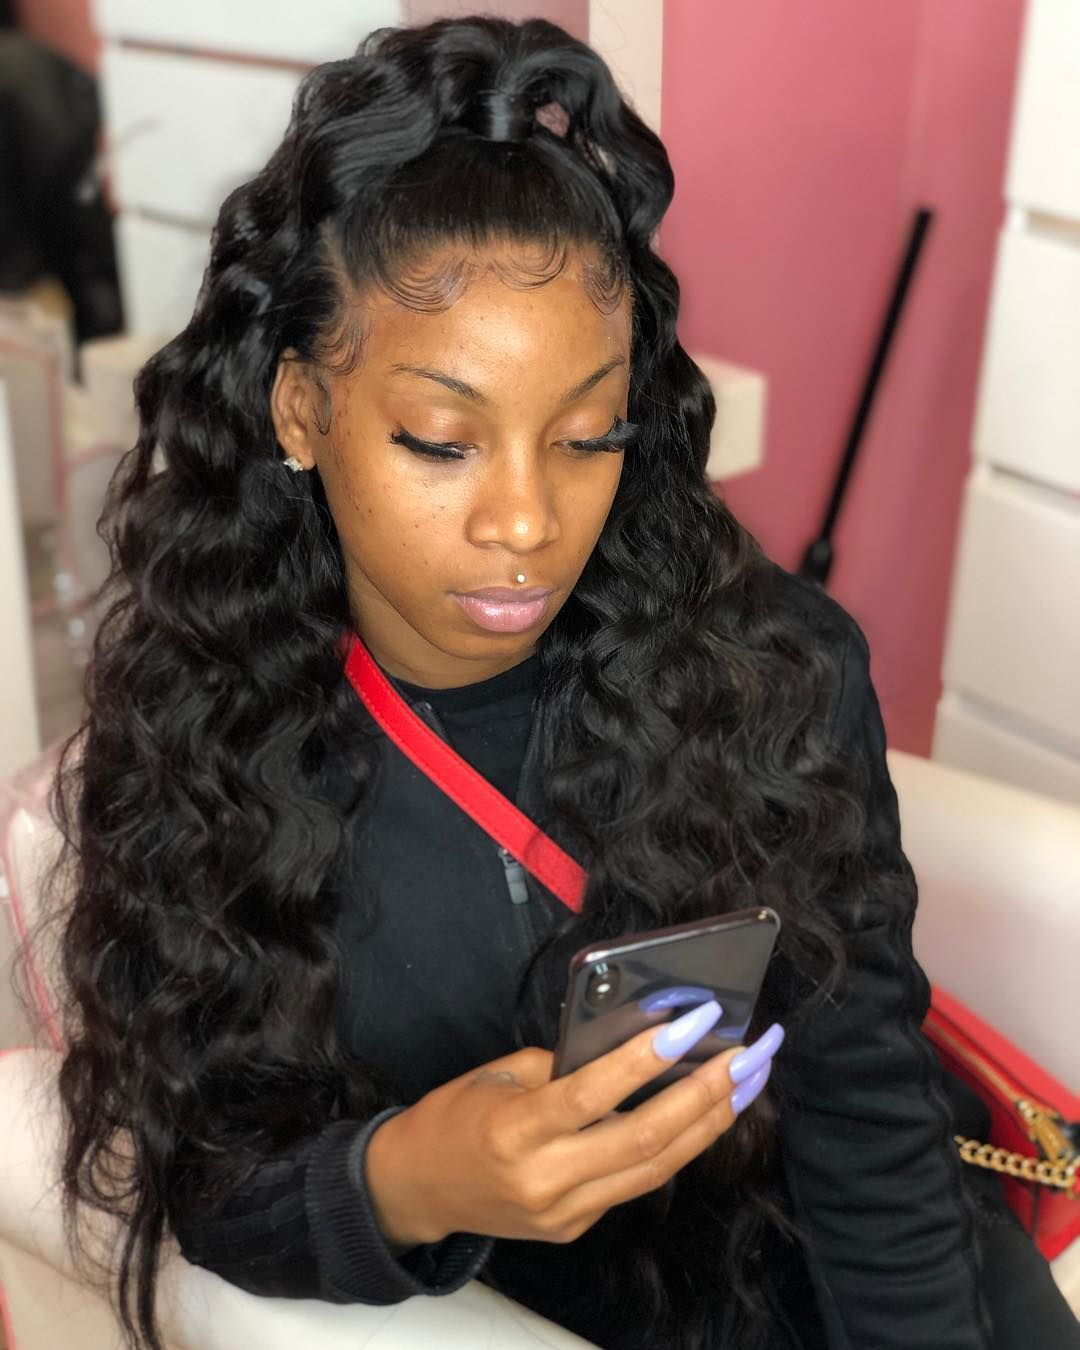 On Instagram Effortless Crimped Half Up Half Down Hair From Imhighmaintenance Can T Down Curly Hairstyles Long Hair Styles Curly Hair Styles Naturally